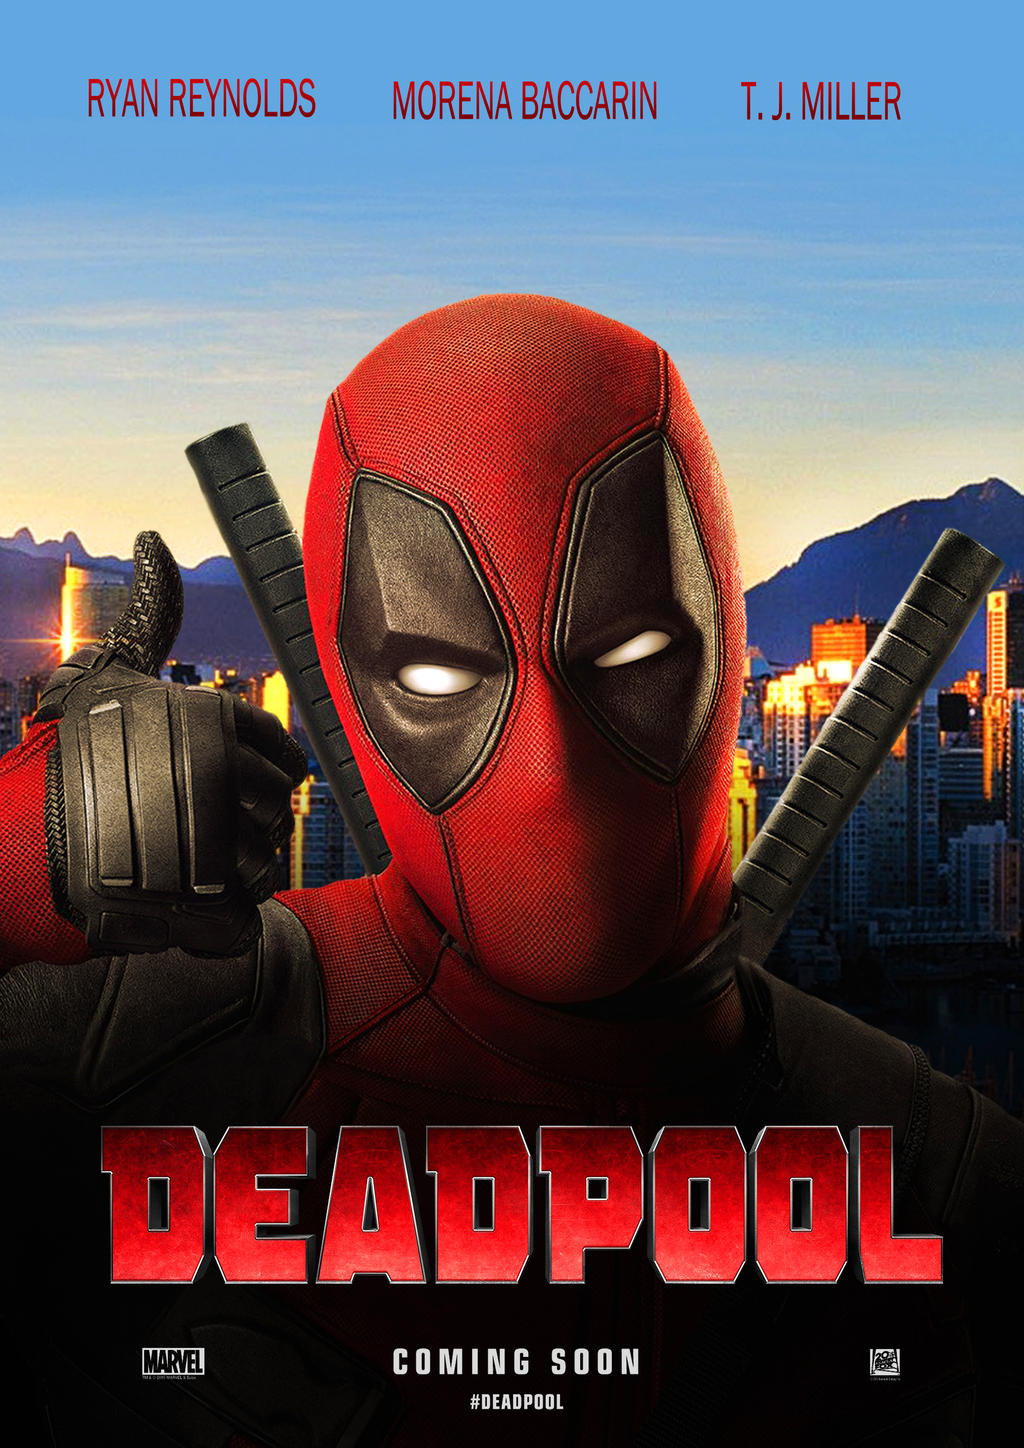 Deadpool (2016) 720p BRRip x264 AAC E-Sub --=R3CoN=-- [850Mb] - PerfectHDMovies